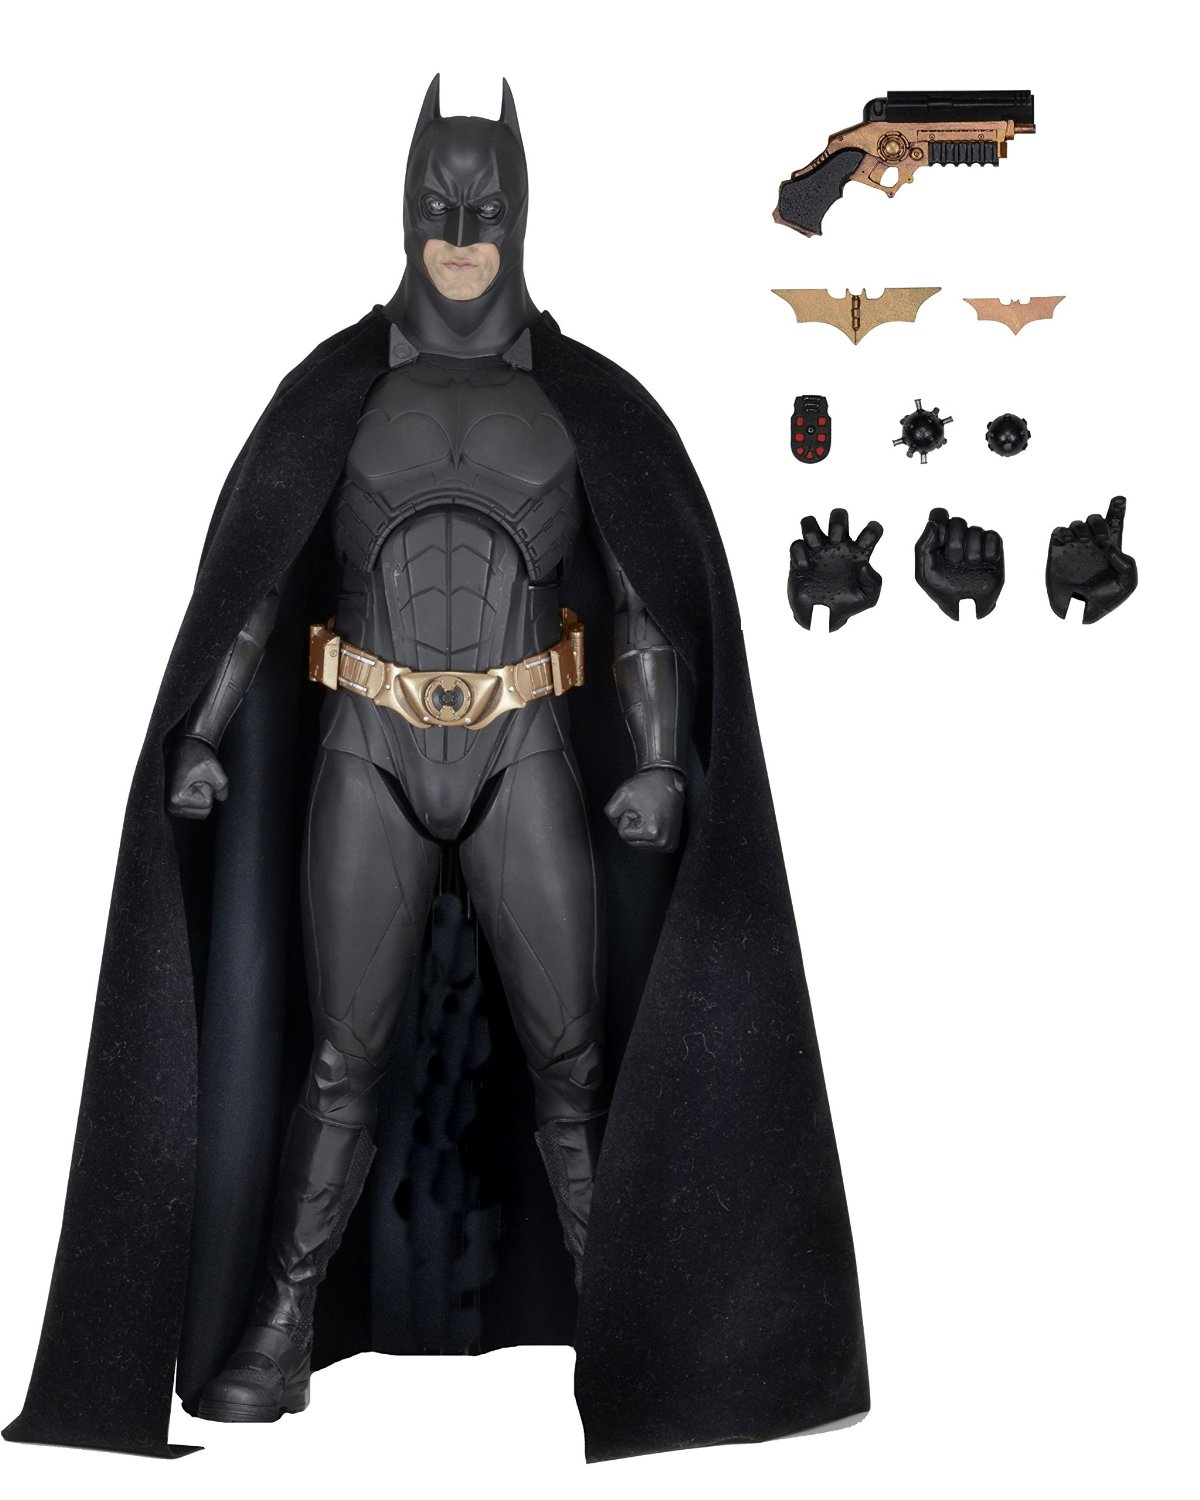 Batman Begins 1 4 Scale Action Figure �� Batman (Christian Bale) by Neca